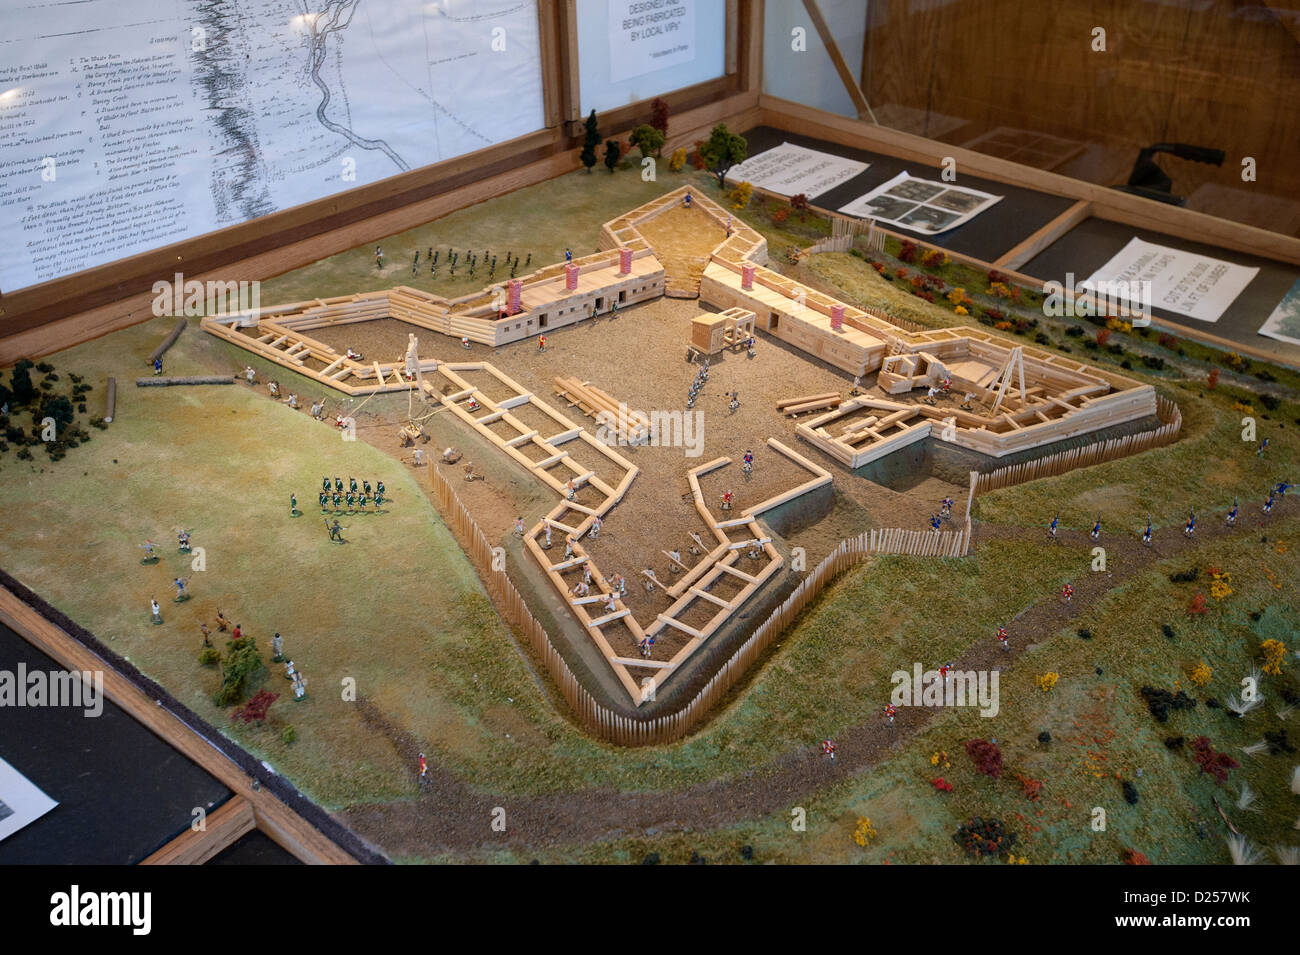 Historical miniature scale model of Fort Stanwix National Monument. - Stock Image